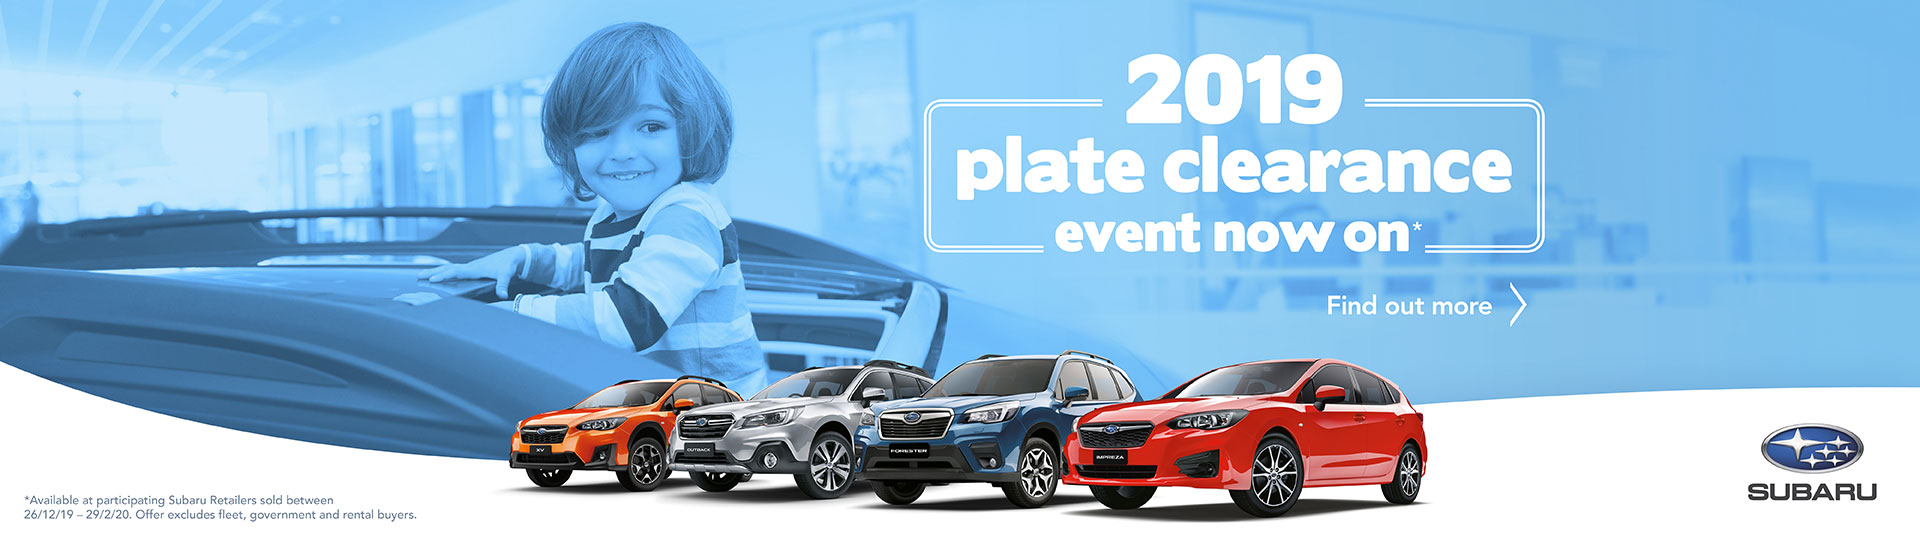 Subaru 2019 plate clearance event now on